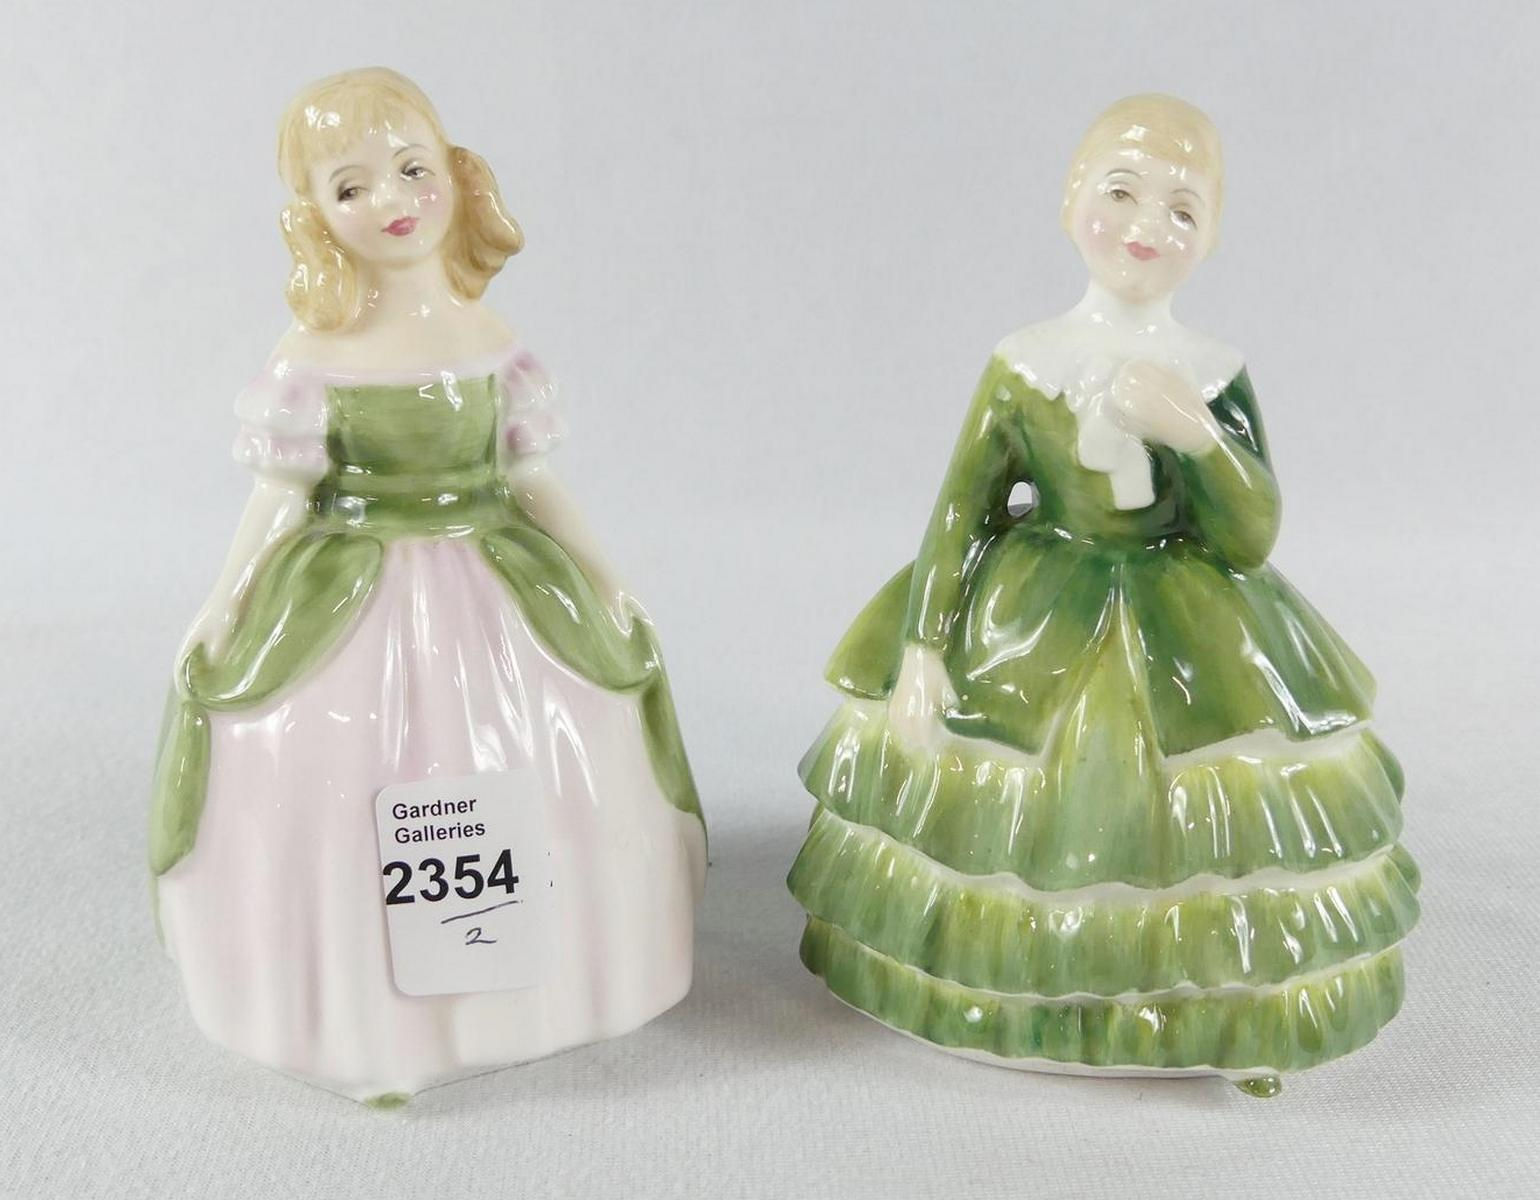 TWO DOULTON FIGURINES